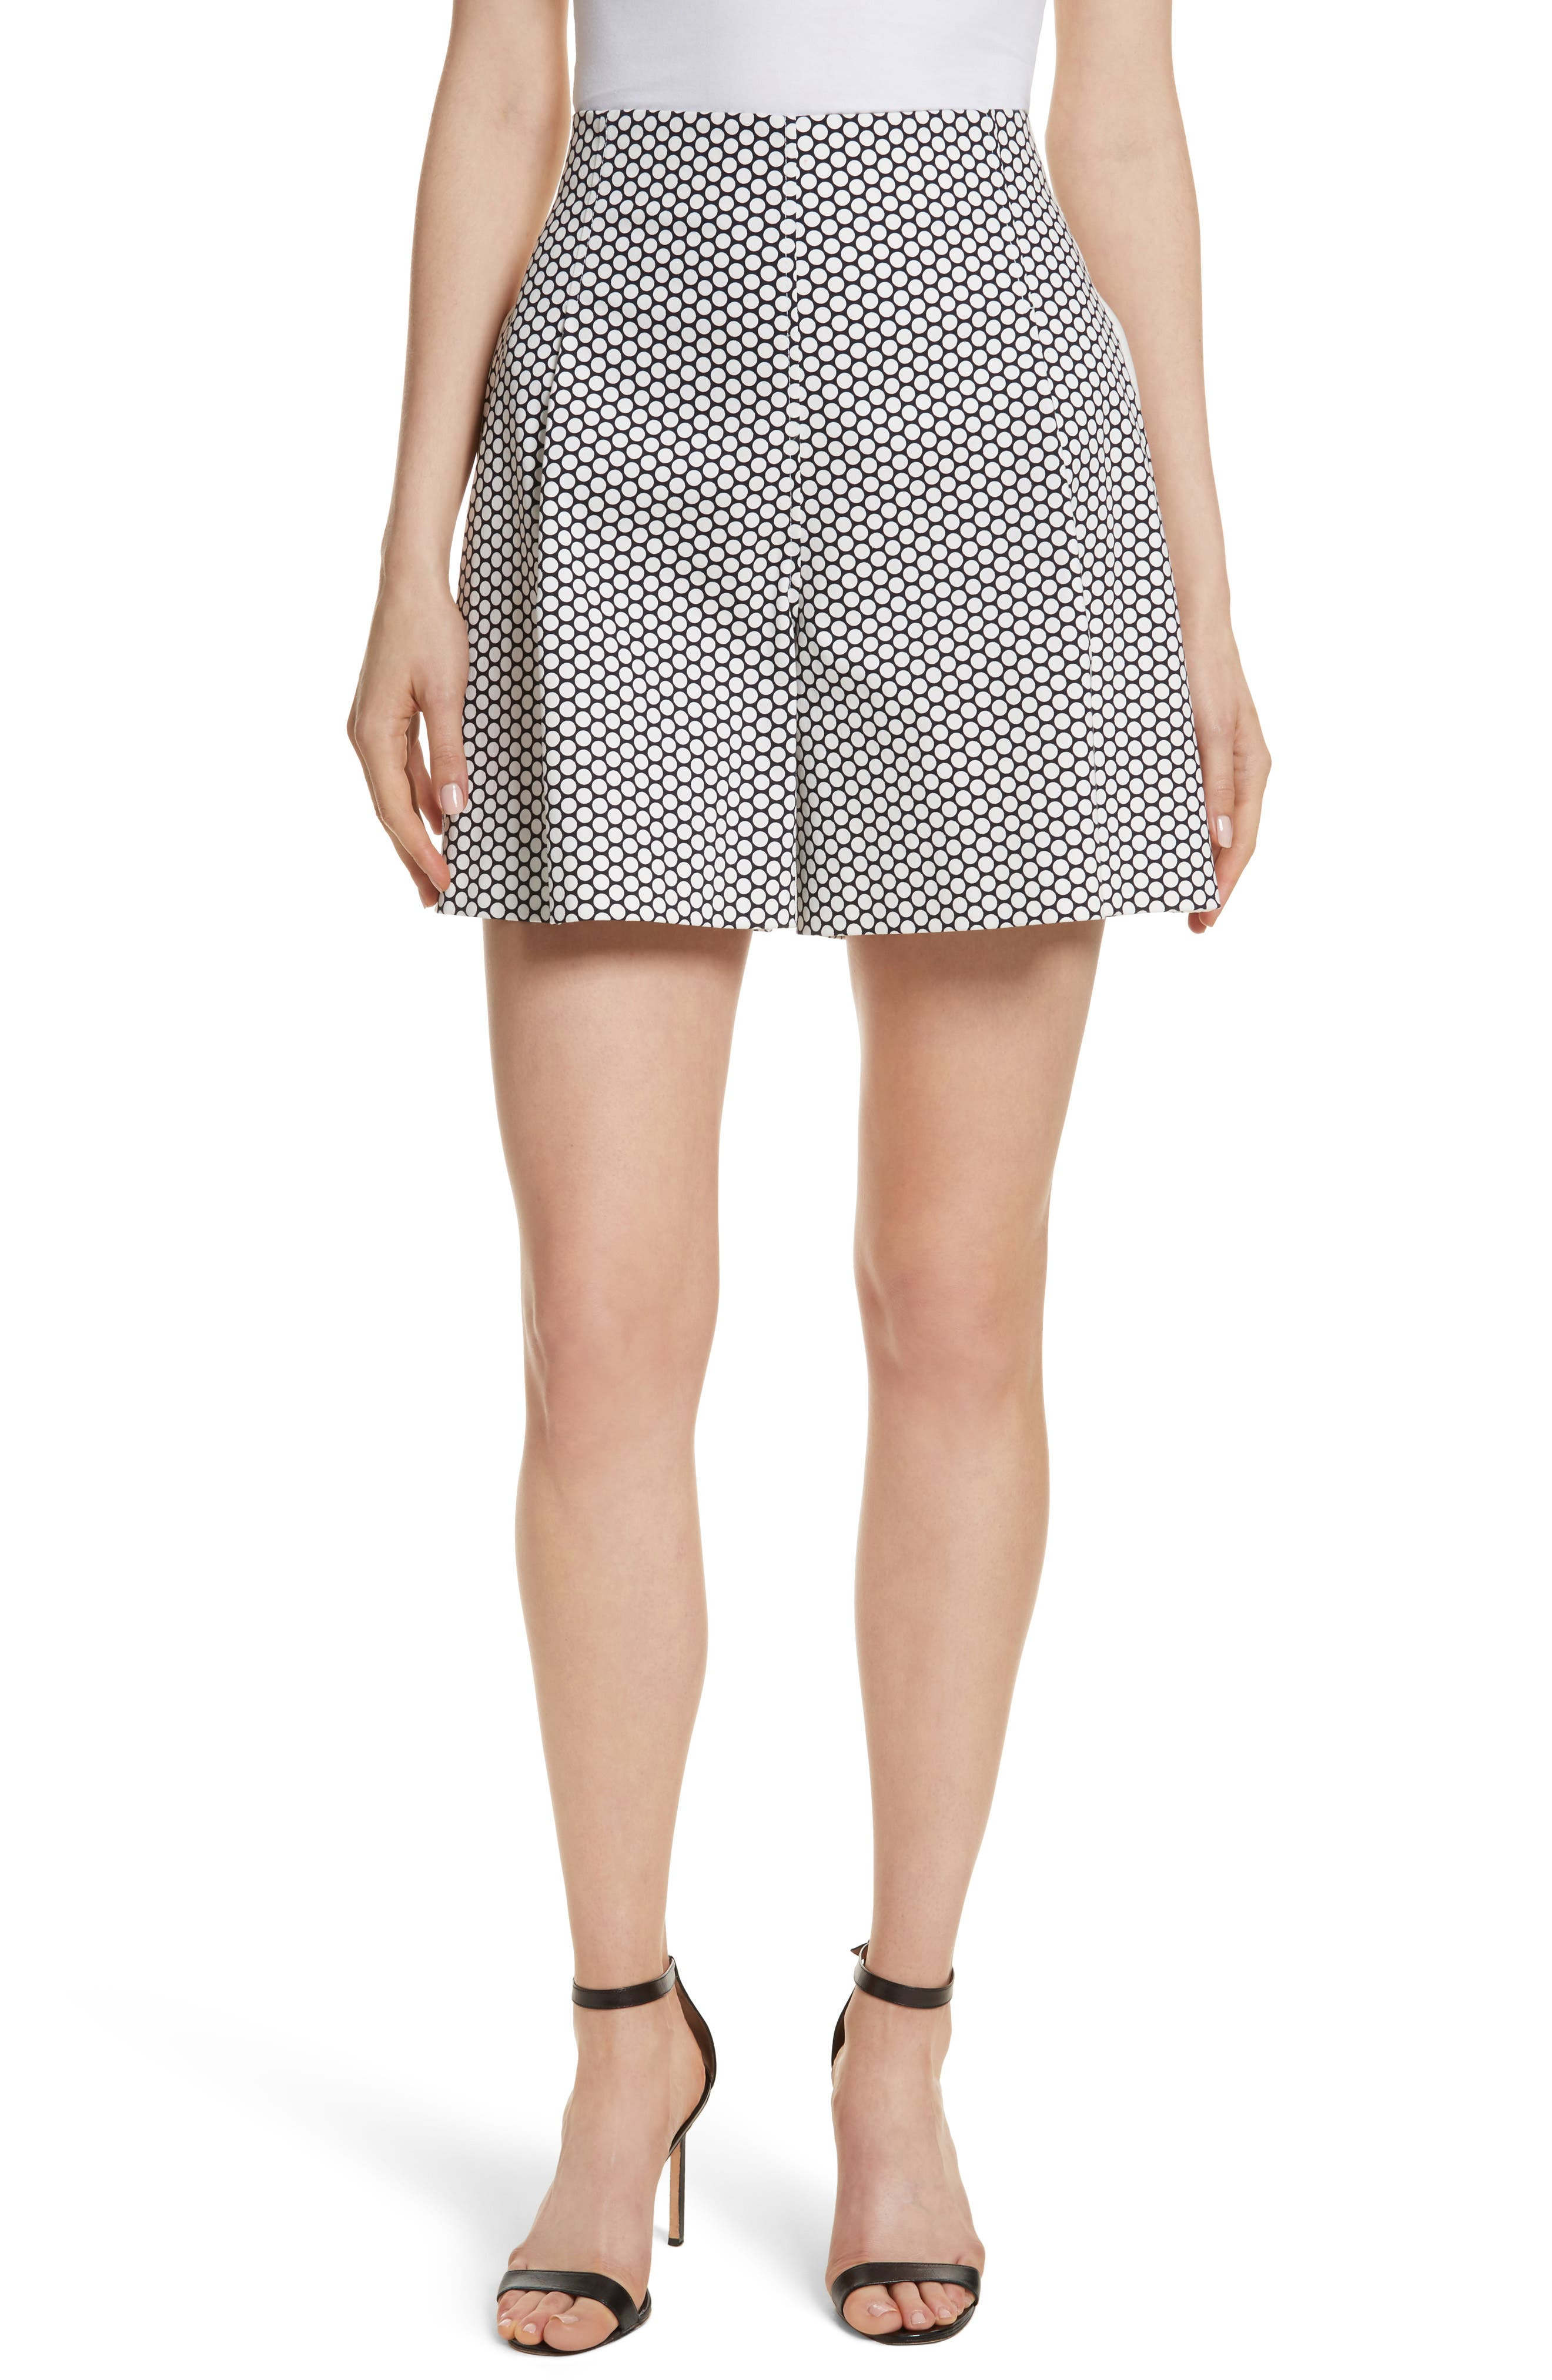 Diane von Furstenberg Dot High Waist Stretch Cotton Shorts,                         Main,                         color, Rowe Dot Ivory